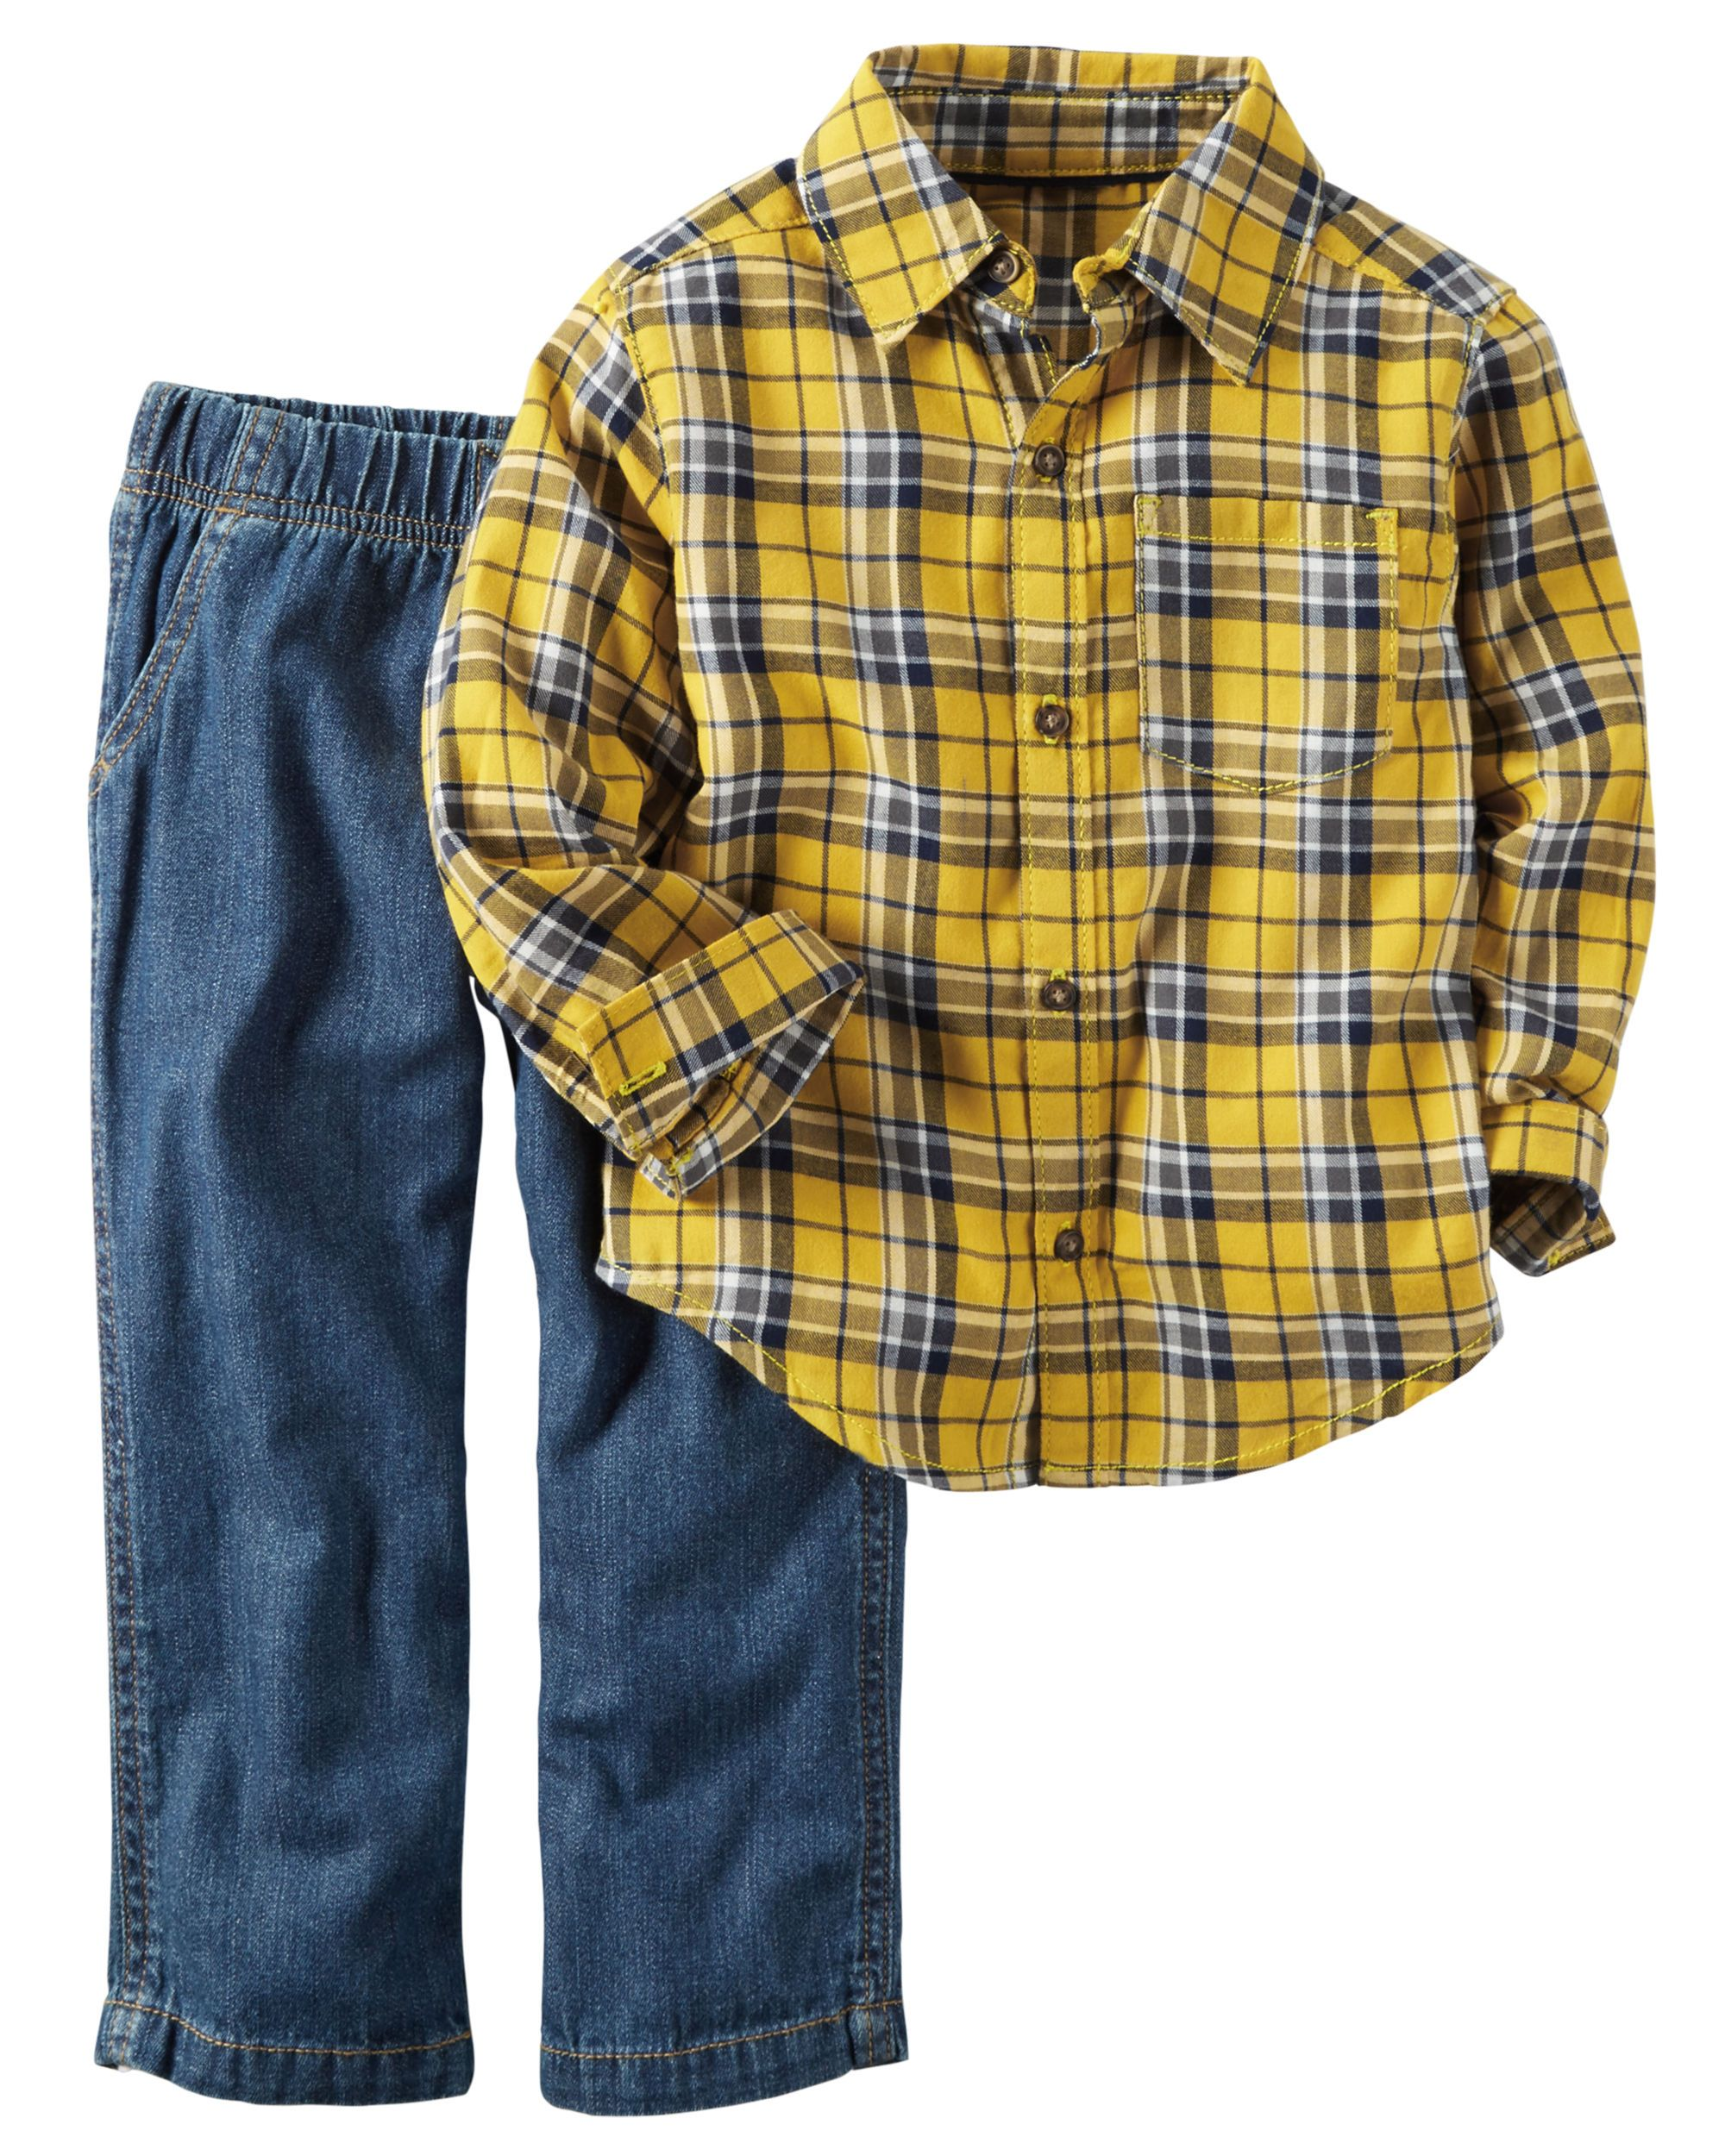 46c2e2cb763 Complete with classic denim and a flannel button-front